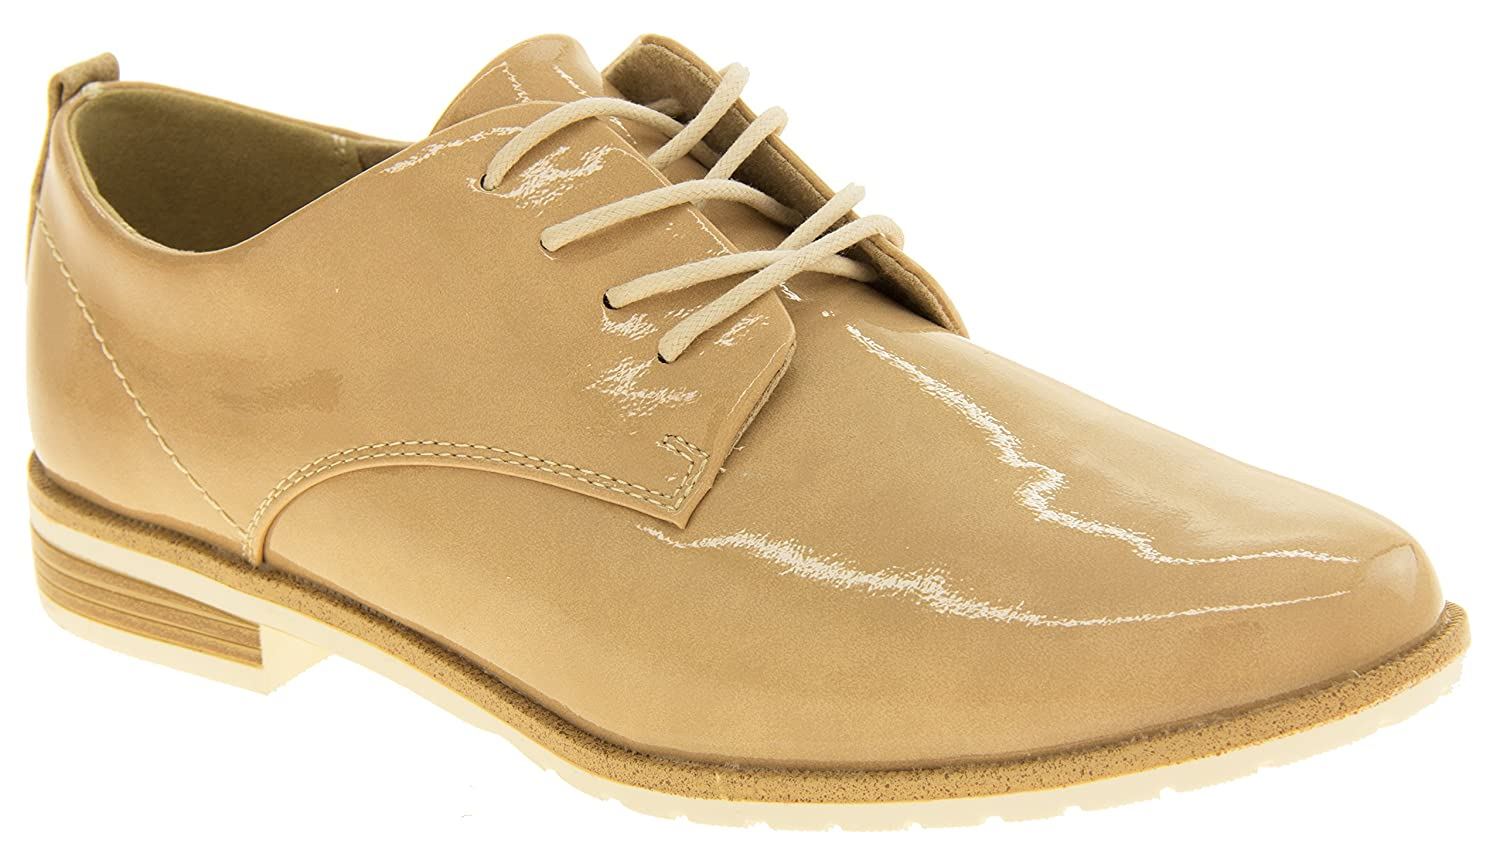 d160611007f2 Footwear Studio Womens Marco Tozzi Faux Leather Lace Up Summer Brogue Shoes   Amazon.co.uk  Shoes   Bags